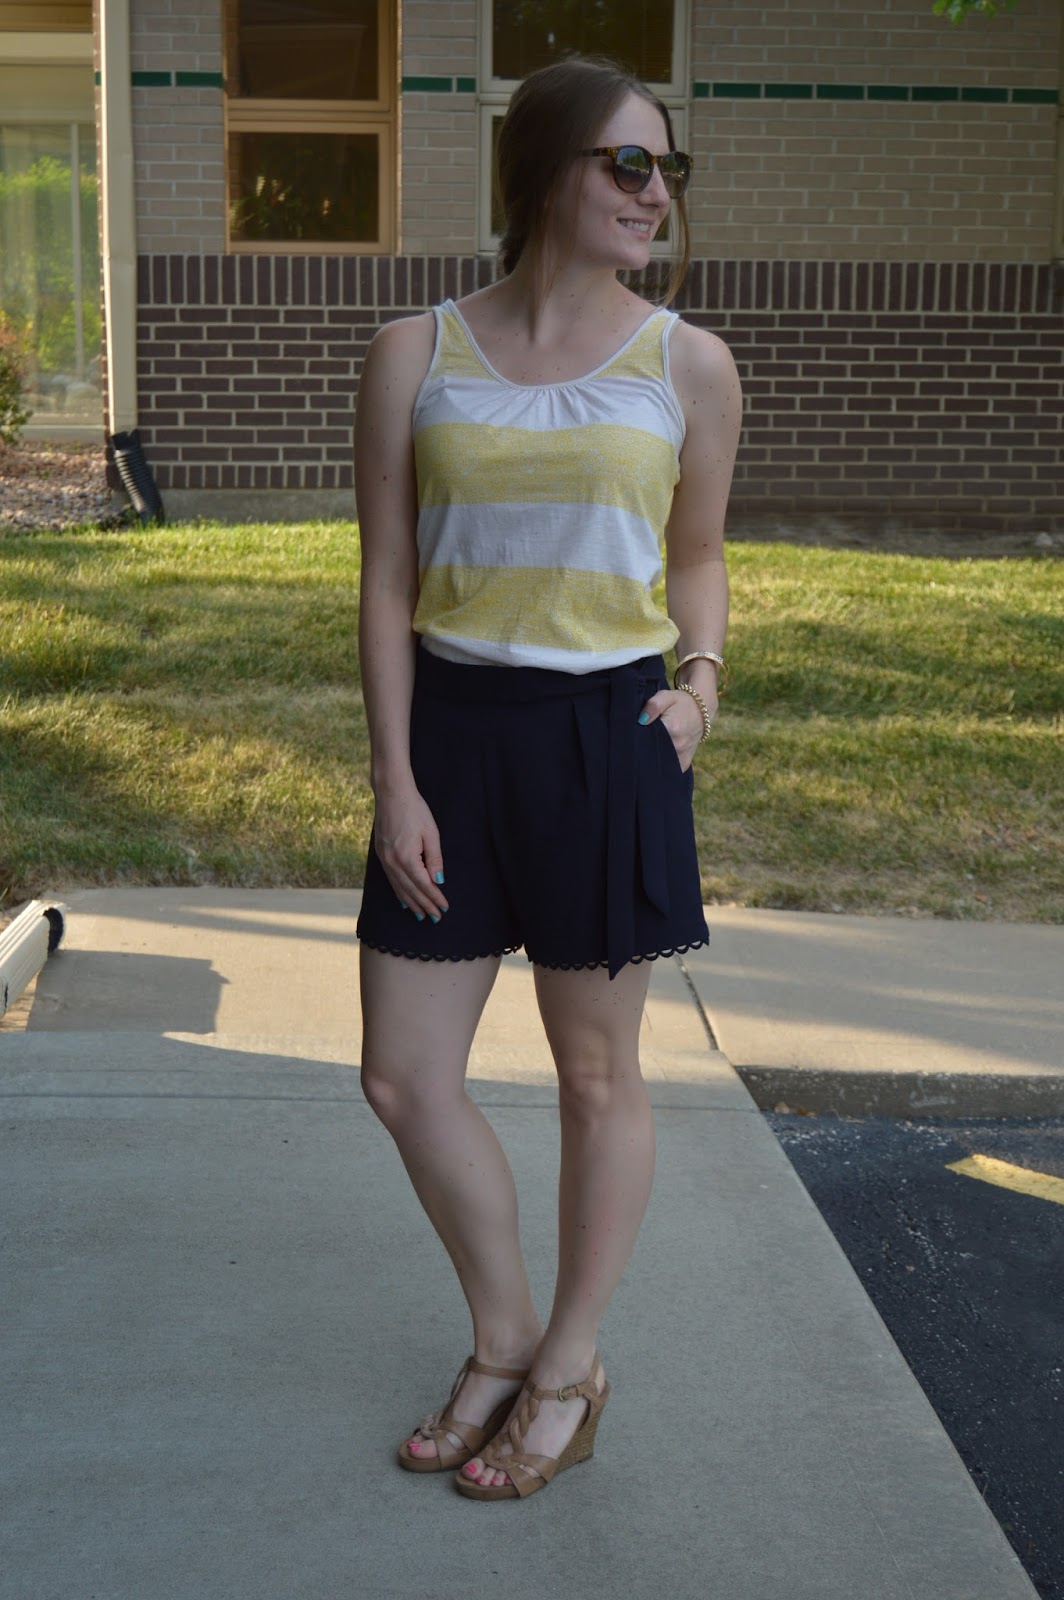 preppy outfits for summer | summer look book | summer outfit ideas | what to wear this summer | shorts with wedges | date night looks with shorts | navy shorts | a memory of us | kansas city fashion blog | yellow striped tank top |